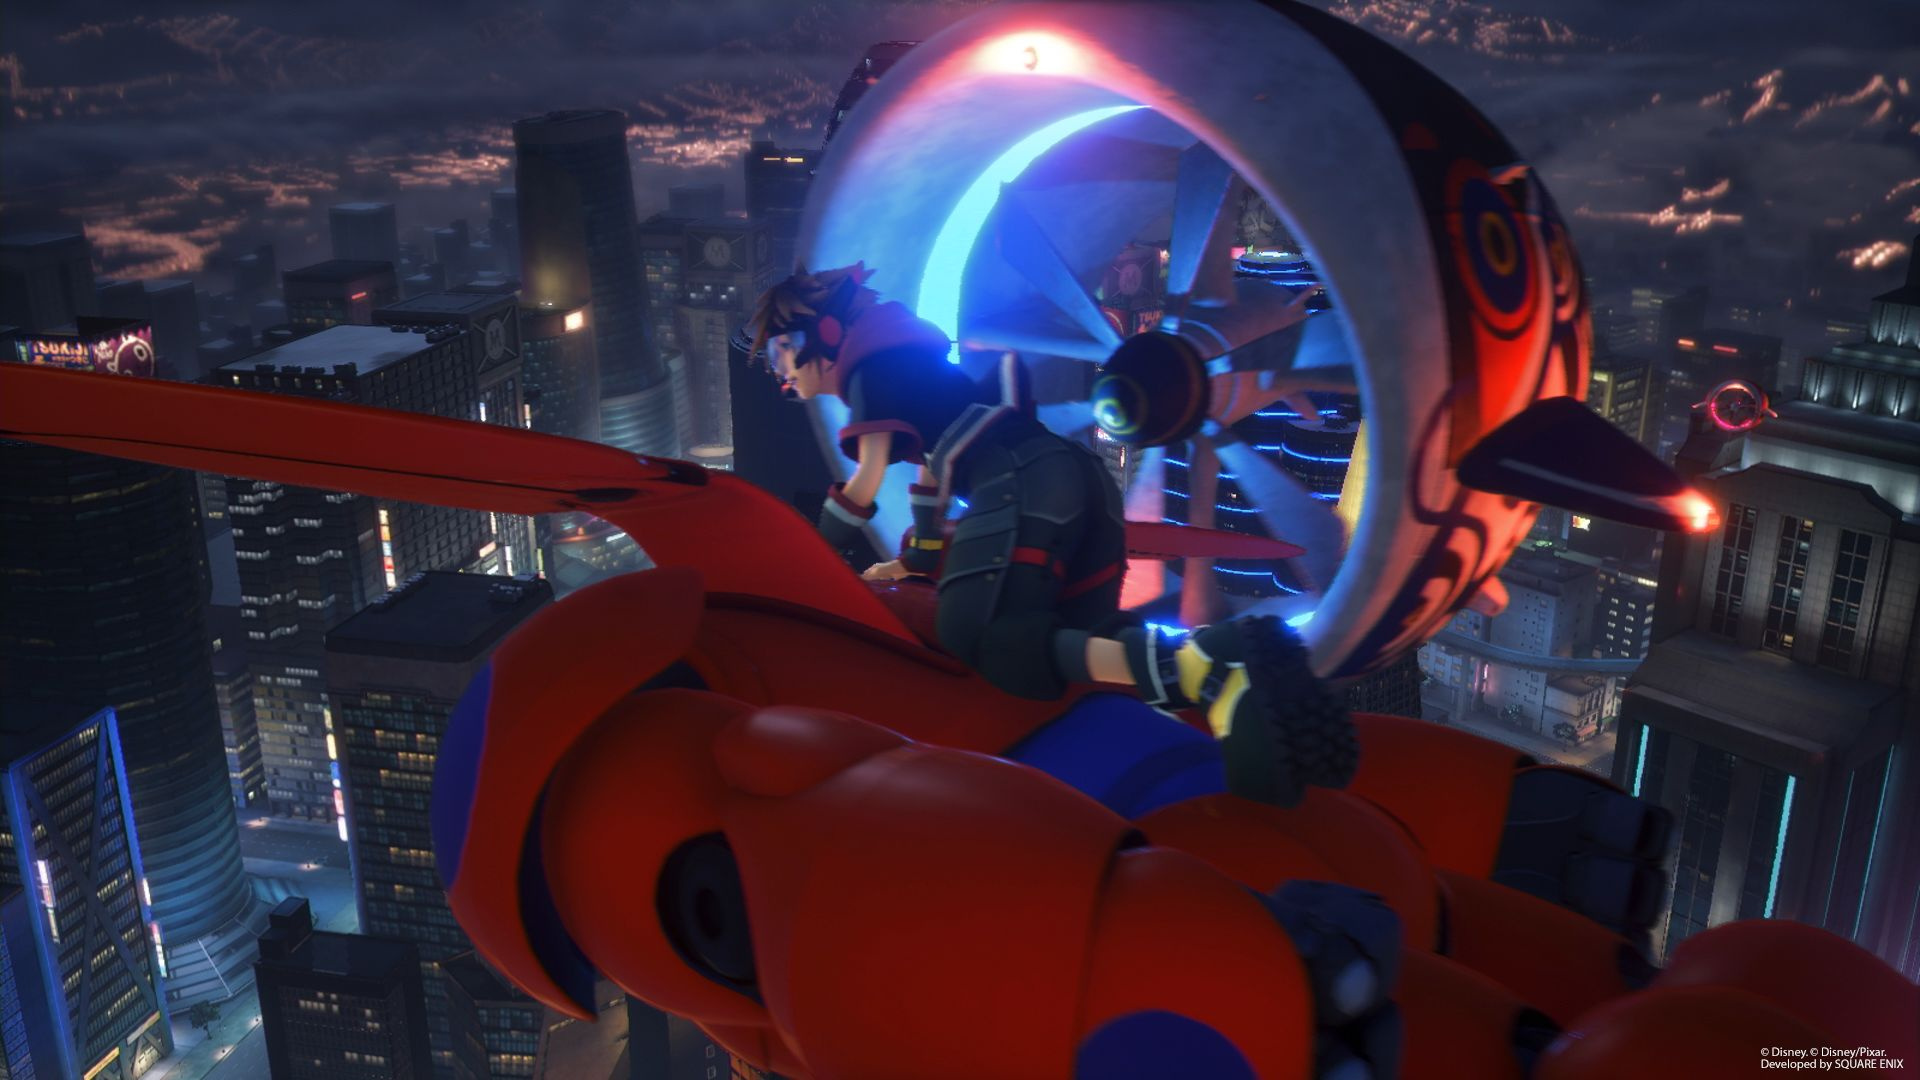 New Kingdom Hearts III Trailer Reveals New Scenes, New Worlds